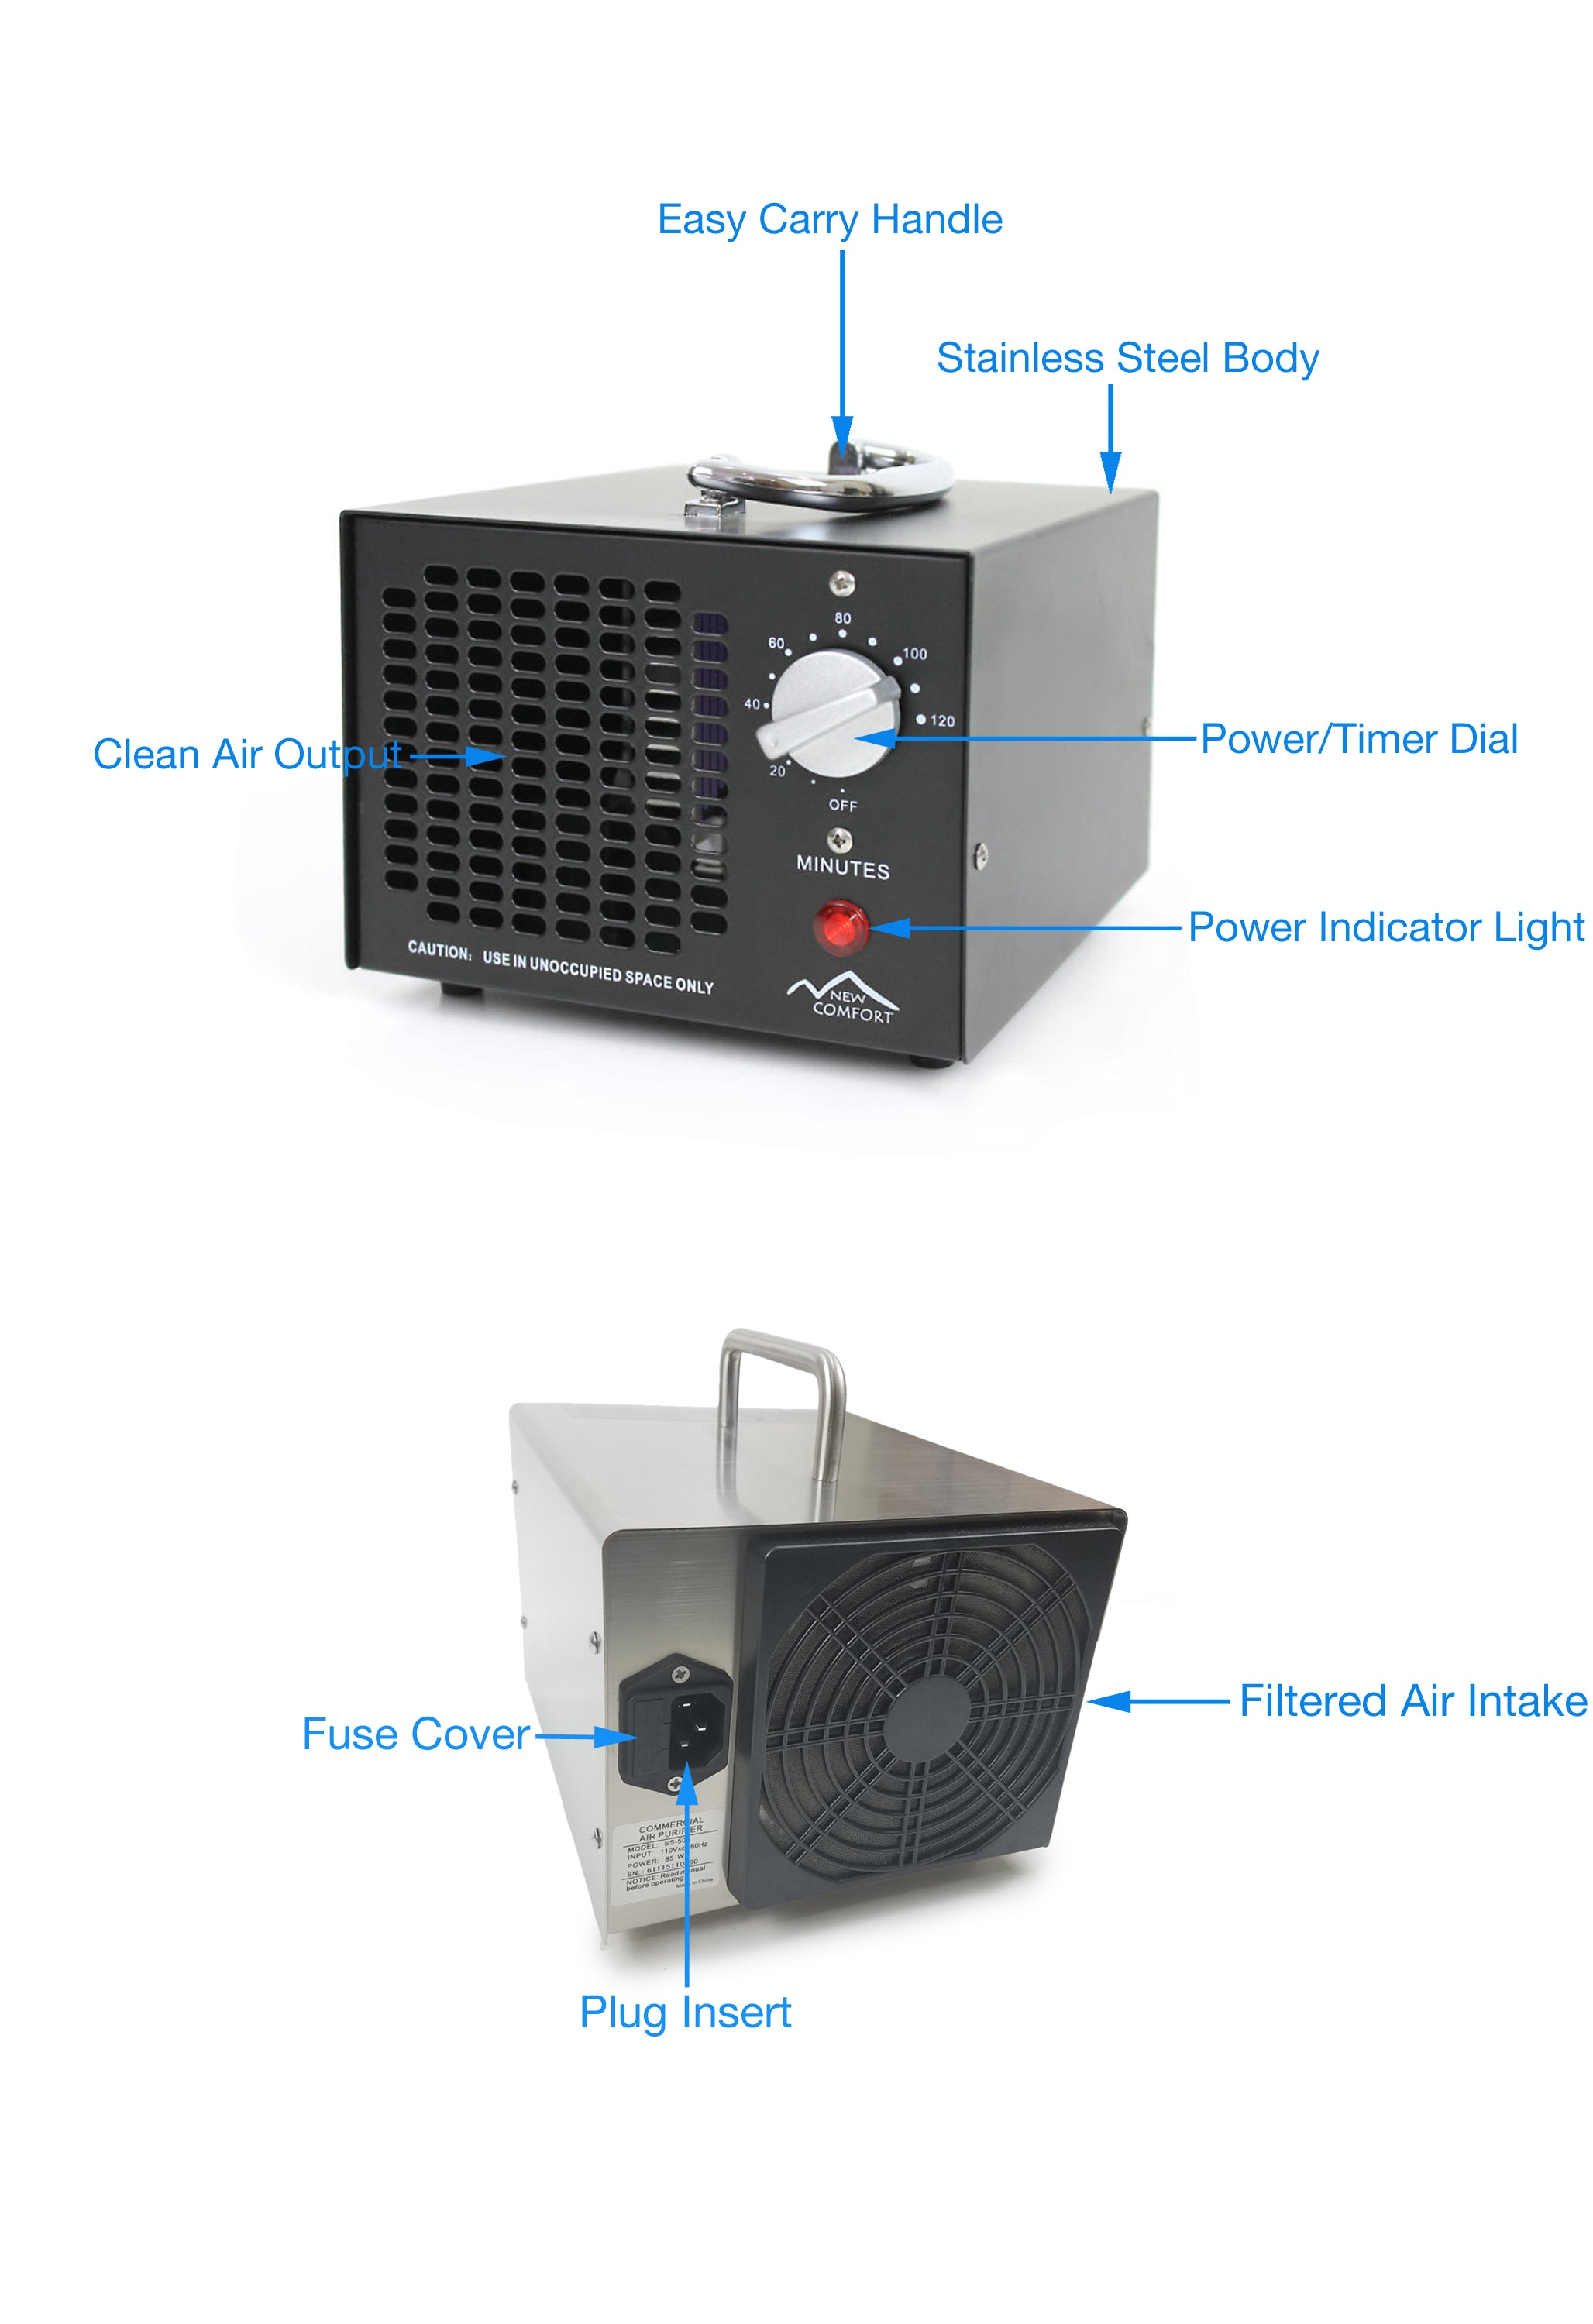 Compact Odor Eliminating Commercial Ozone Generator by New Comfort